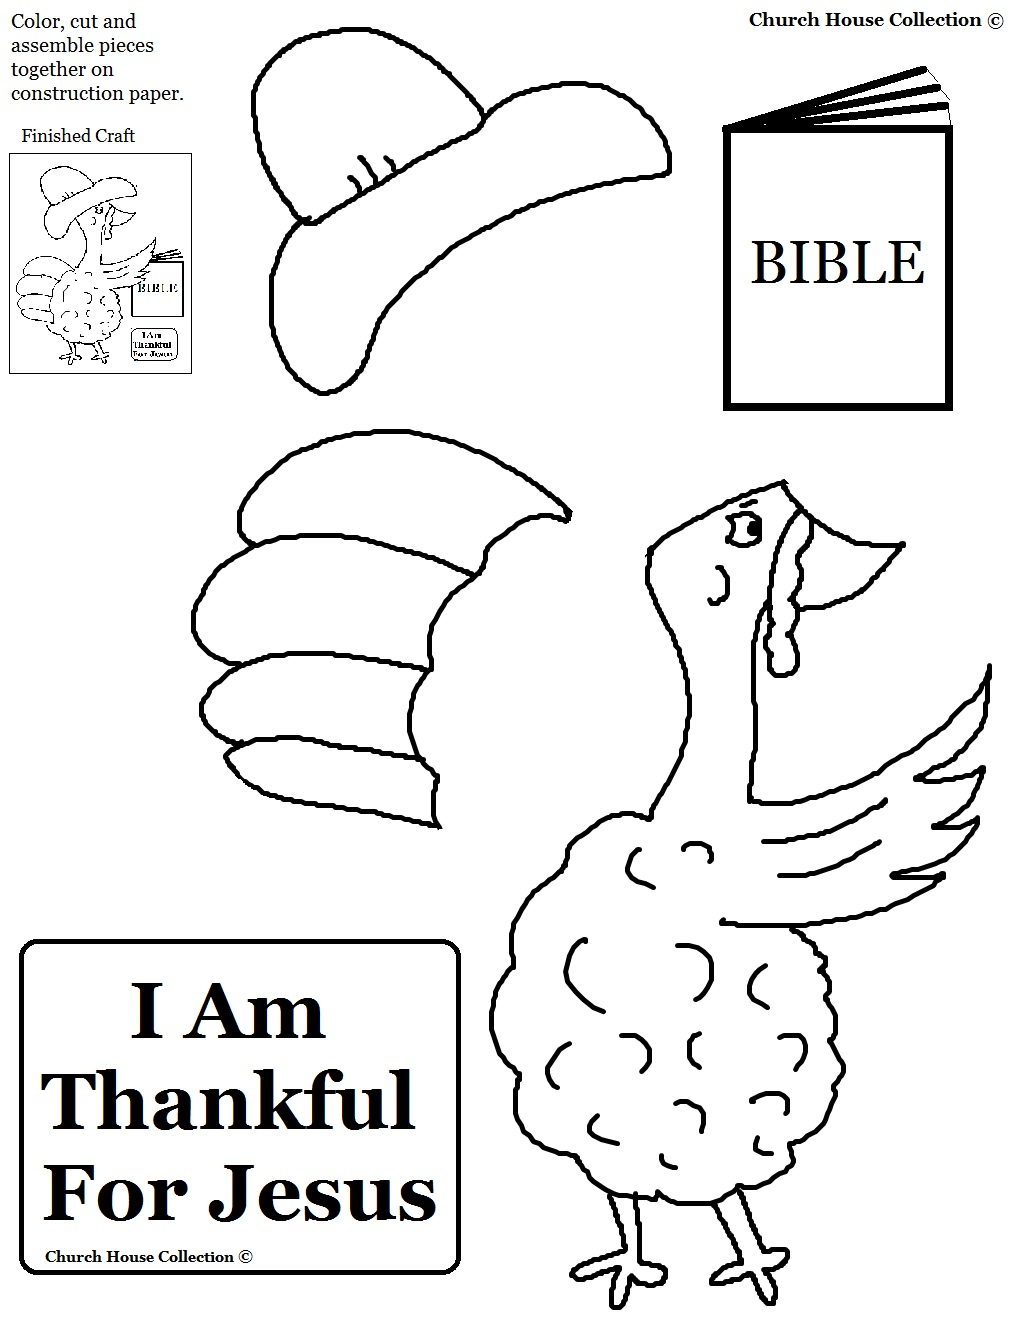 Church house collection blog thanksgiving turkey i am for Thanksgiving coloring pages for children s church